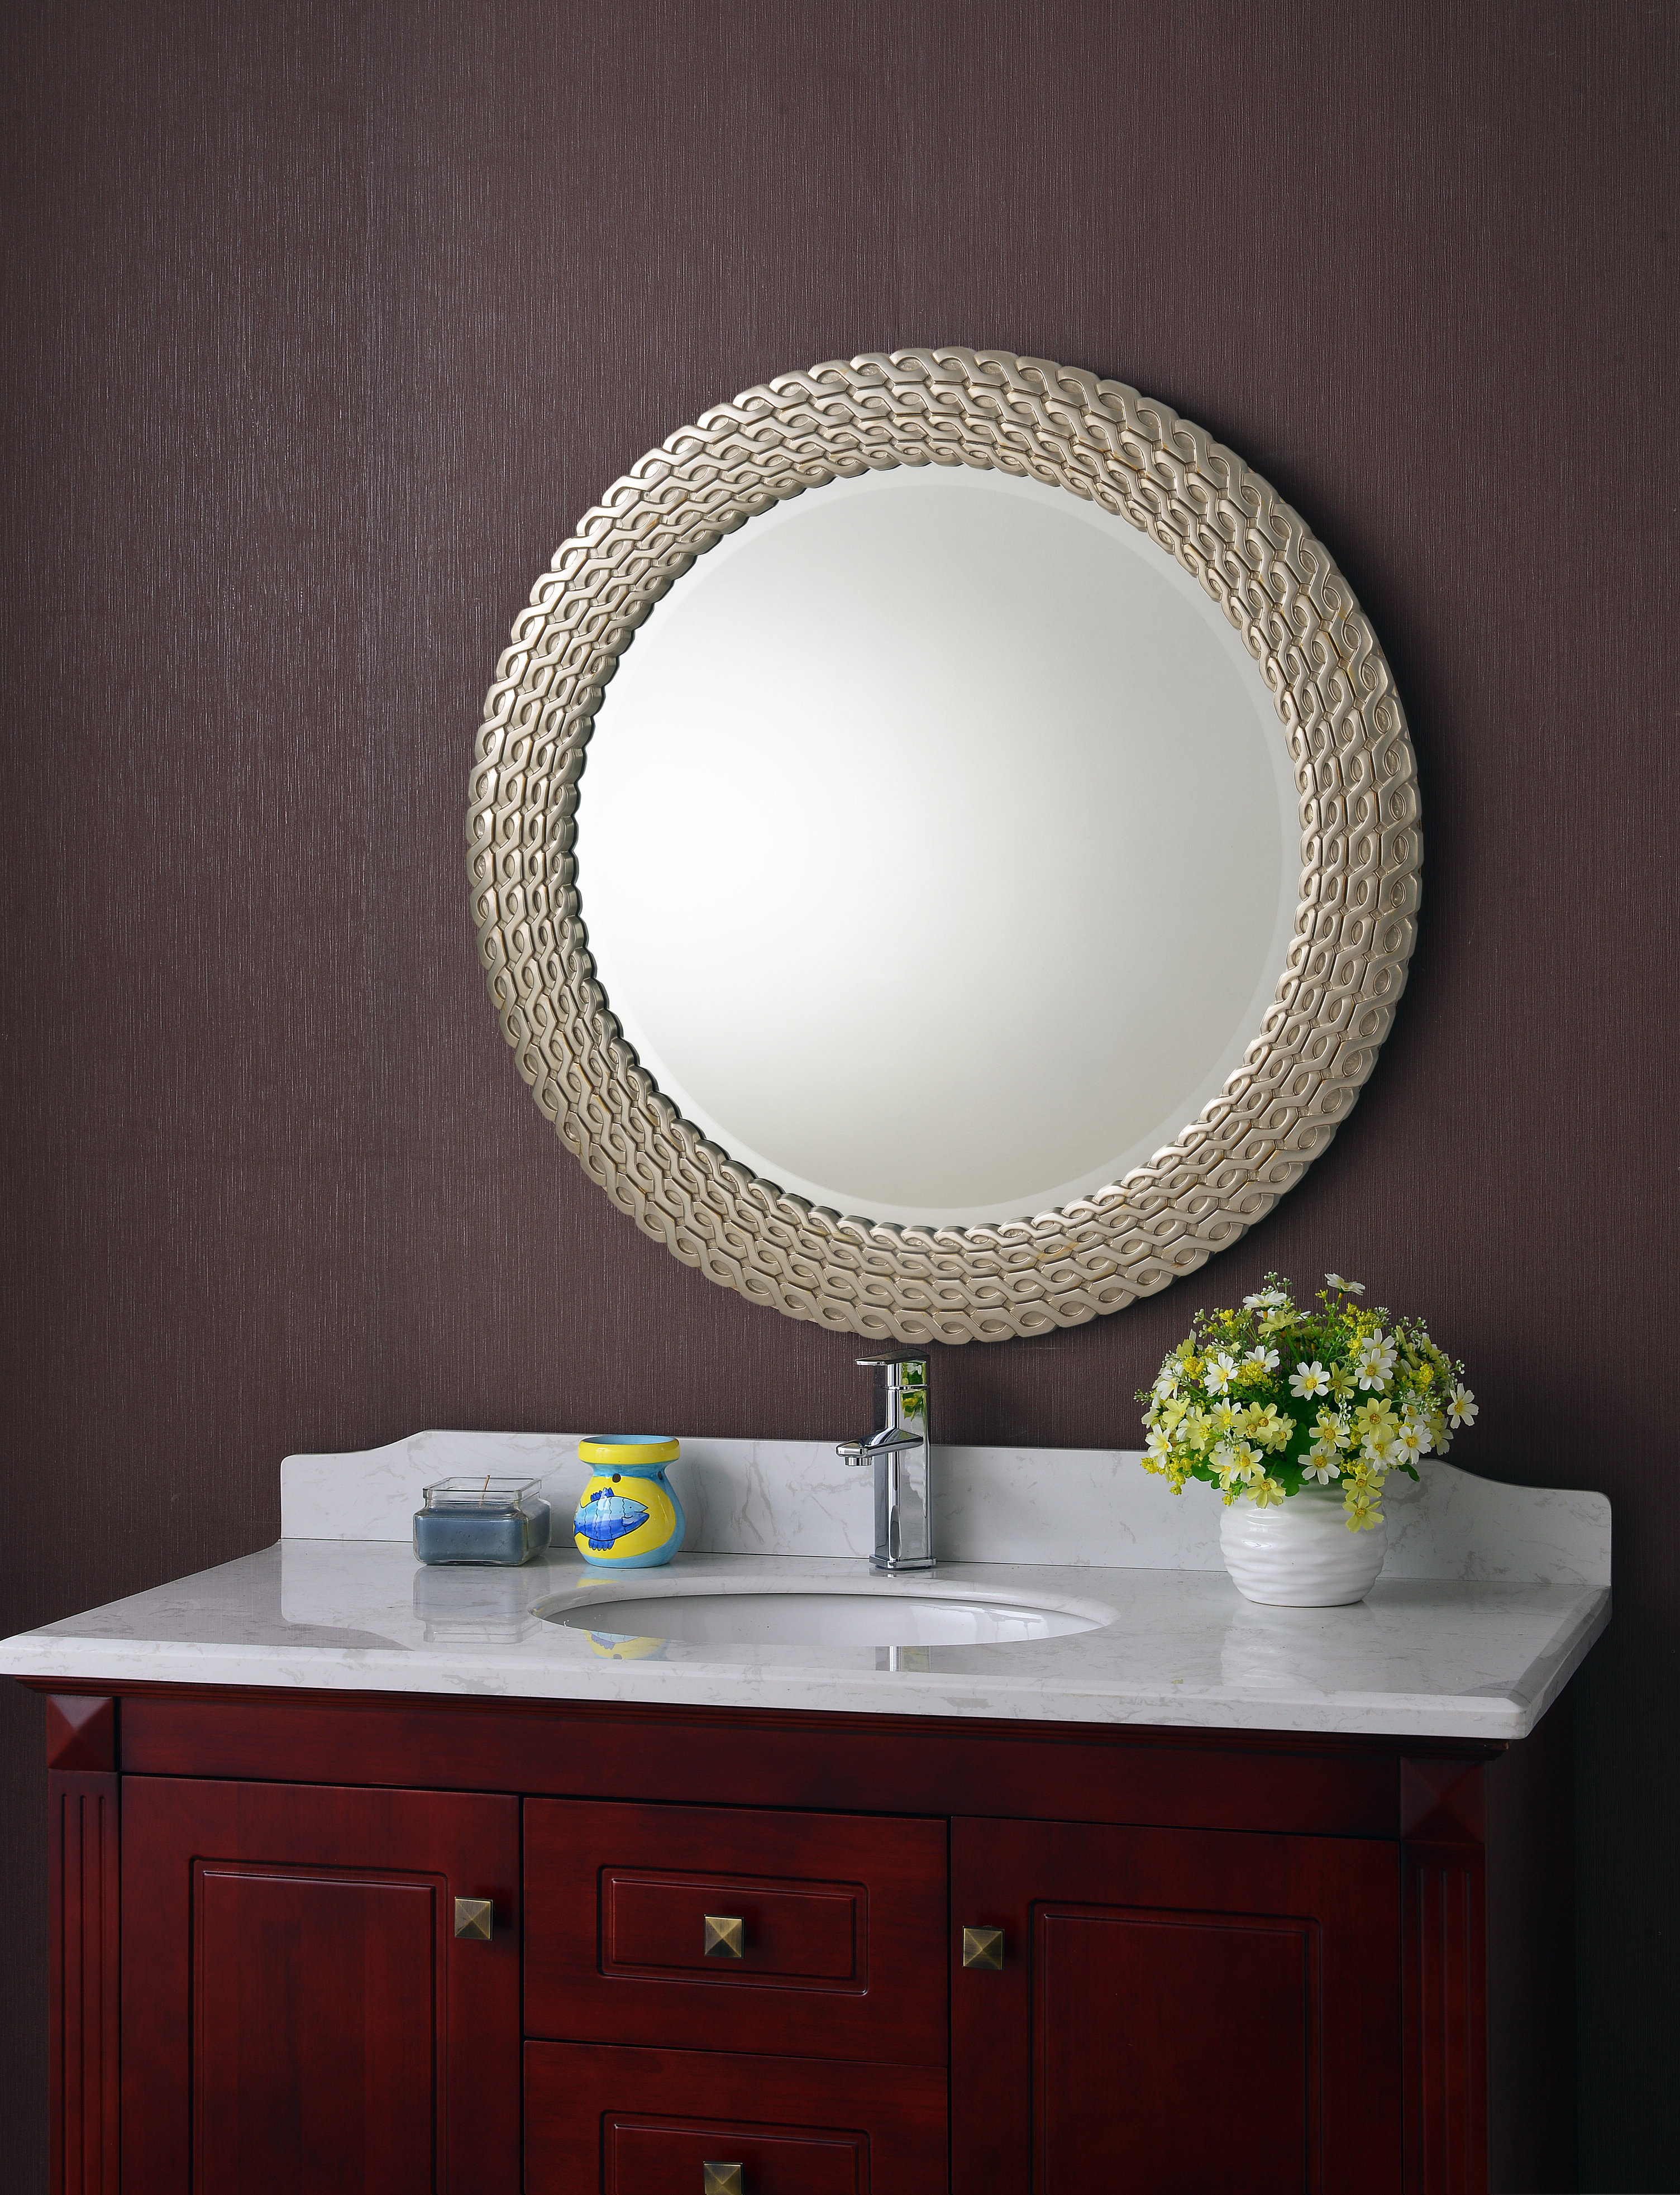 Bracelet Traditional Accent Mirror & Reviews | Joss & Main Within Mcnary Accent Mirrors (View 8 of 20)